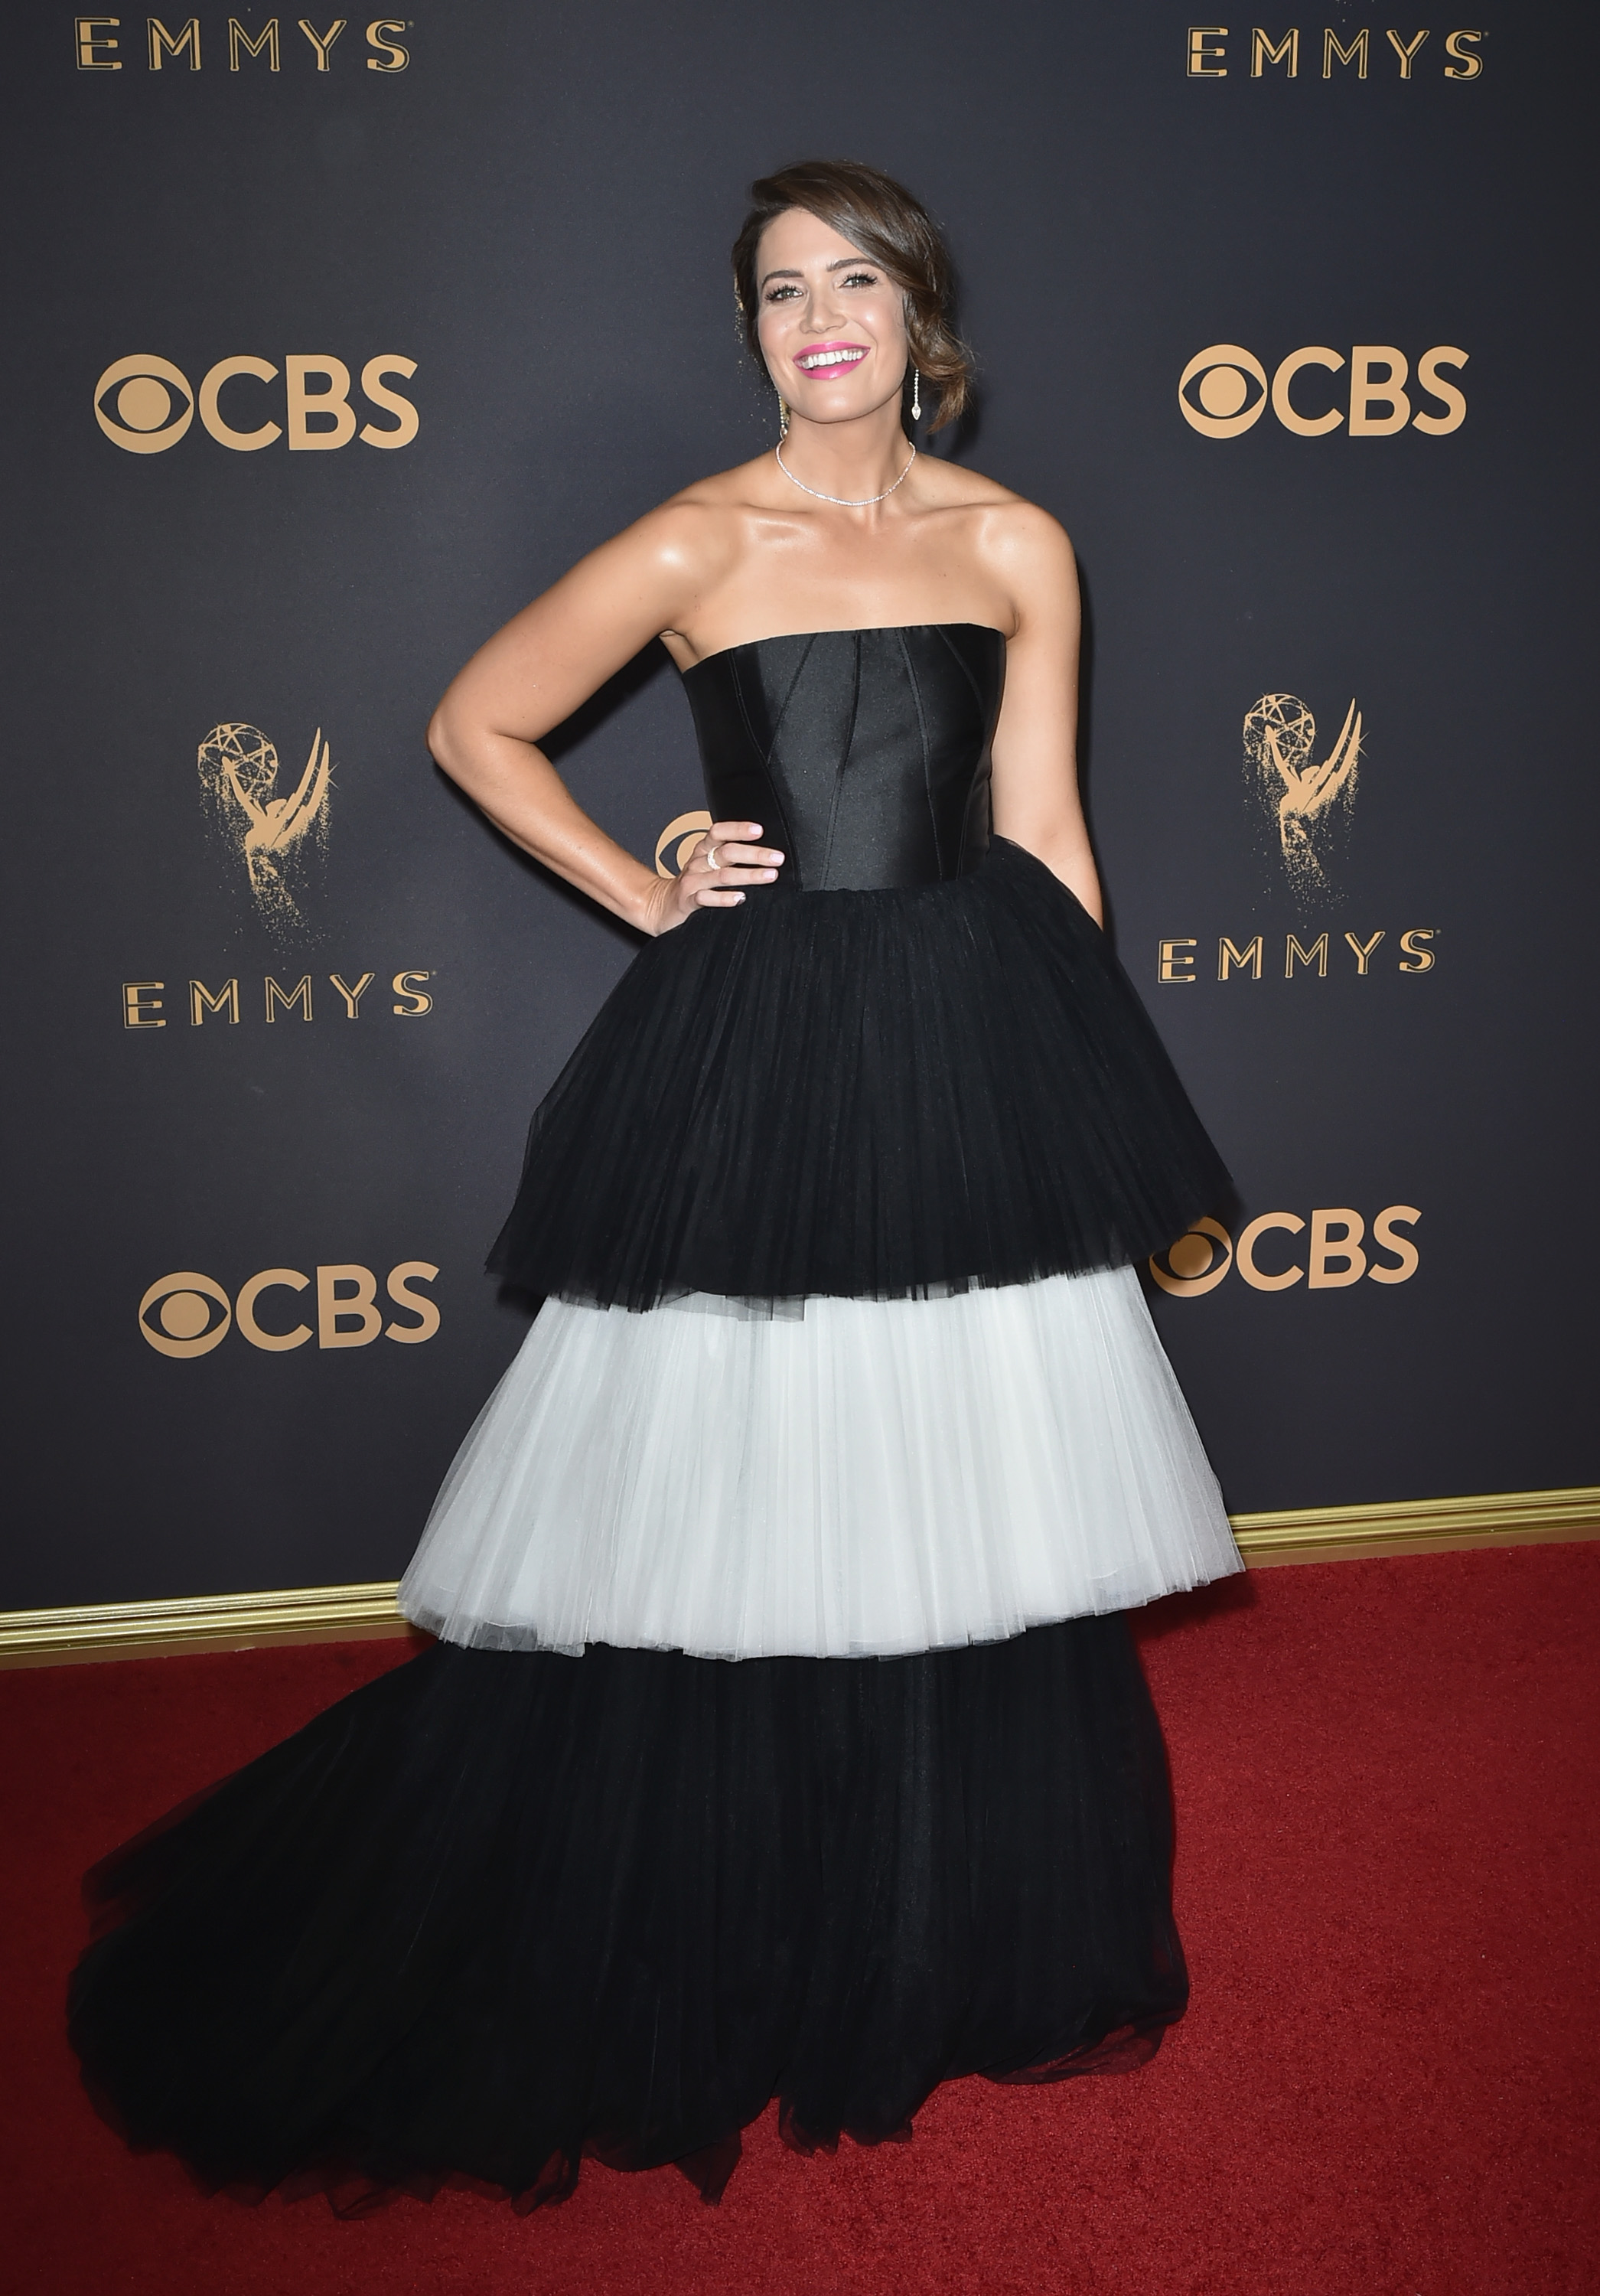 Mandy Moore, estilo, look, style, dress, vestido, Emmy Awards, Emmys